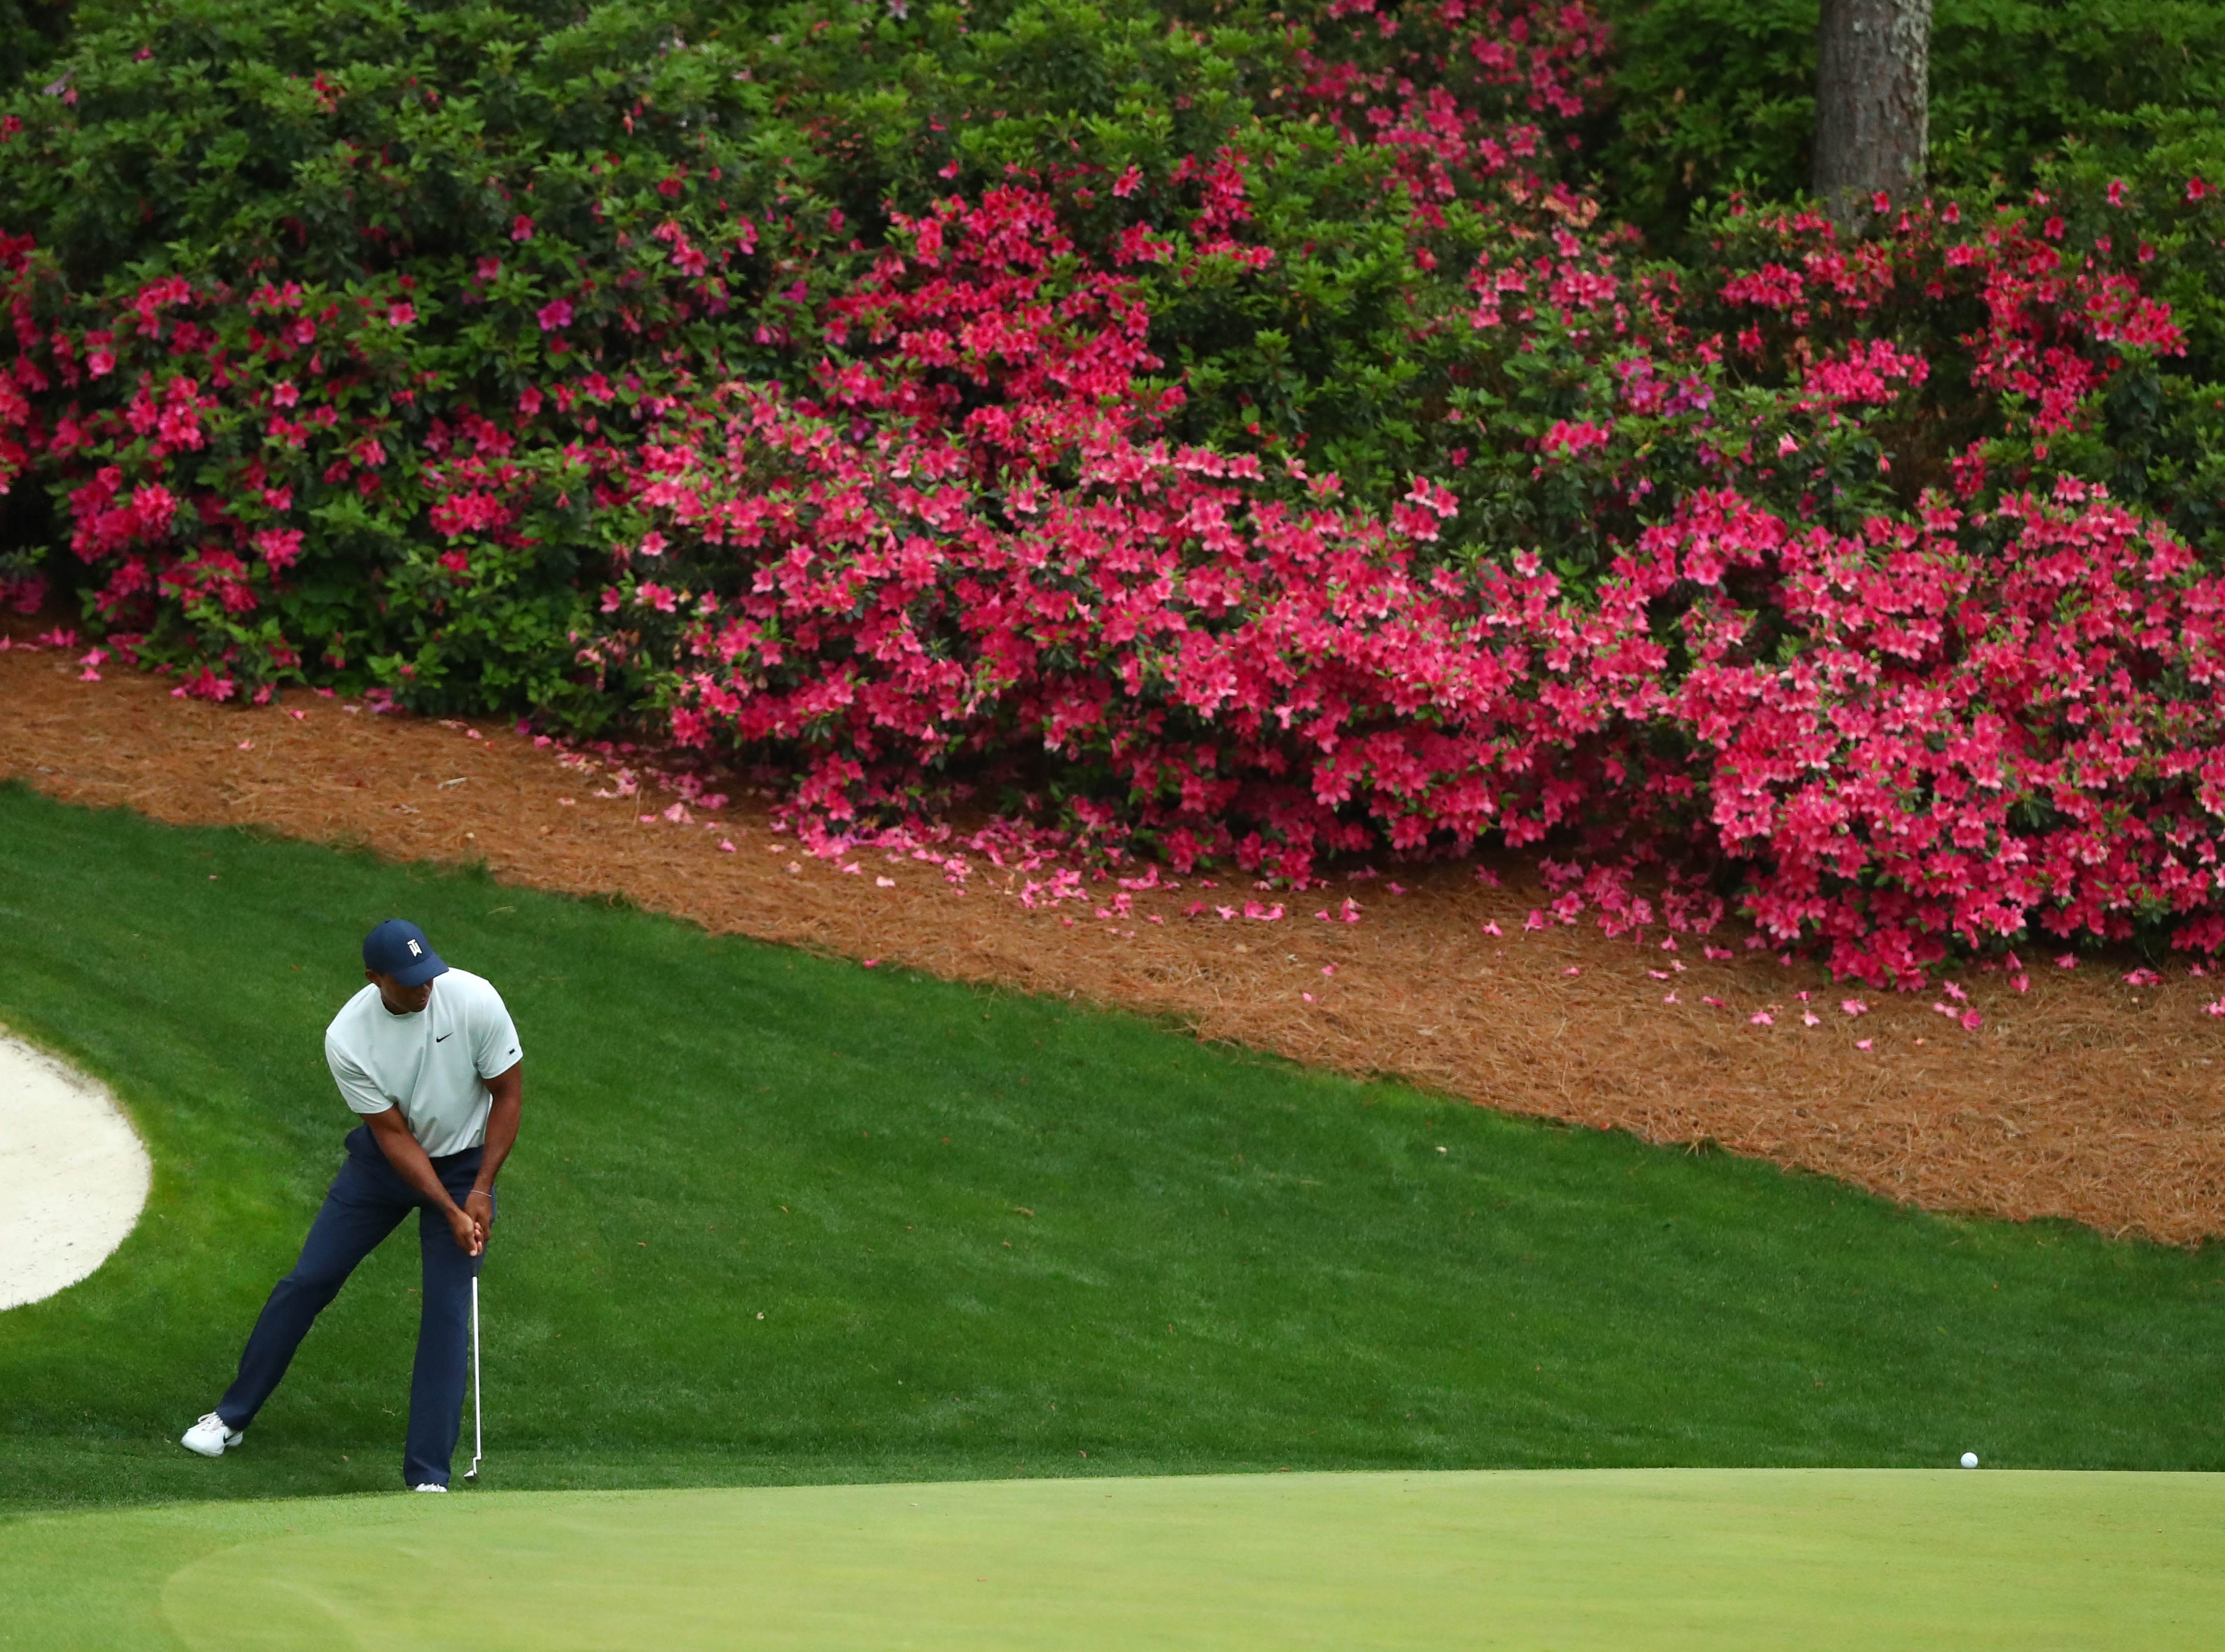 Apr 12, 2019; Augusta, GA, USA; Tiger Woods putts on the 13th green during the second round of The Masters golf tournament at Augusta National Golf Club. Mandatory Credit: Rob Schumacher-USA TODAY Sports